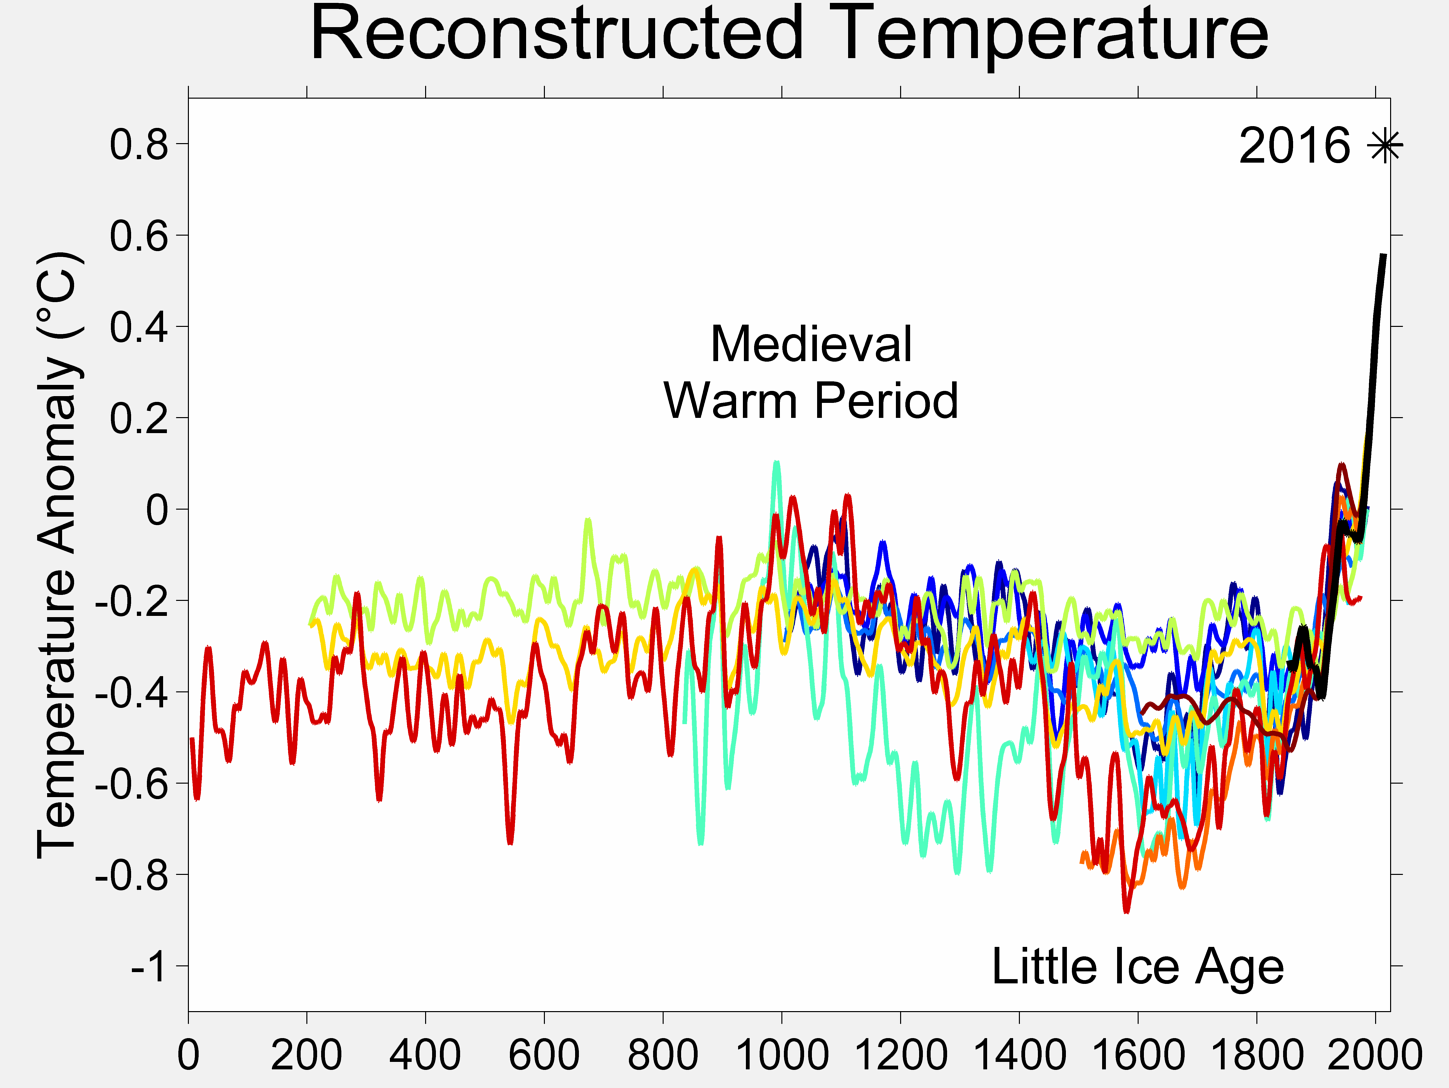 Little Ice Age - Wikipedia